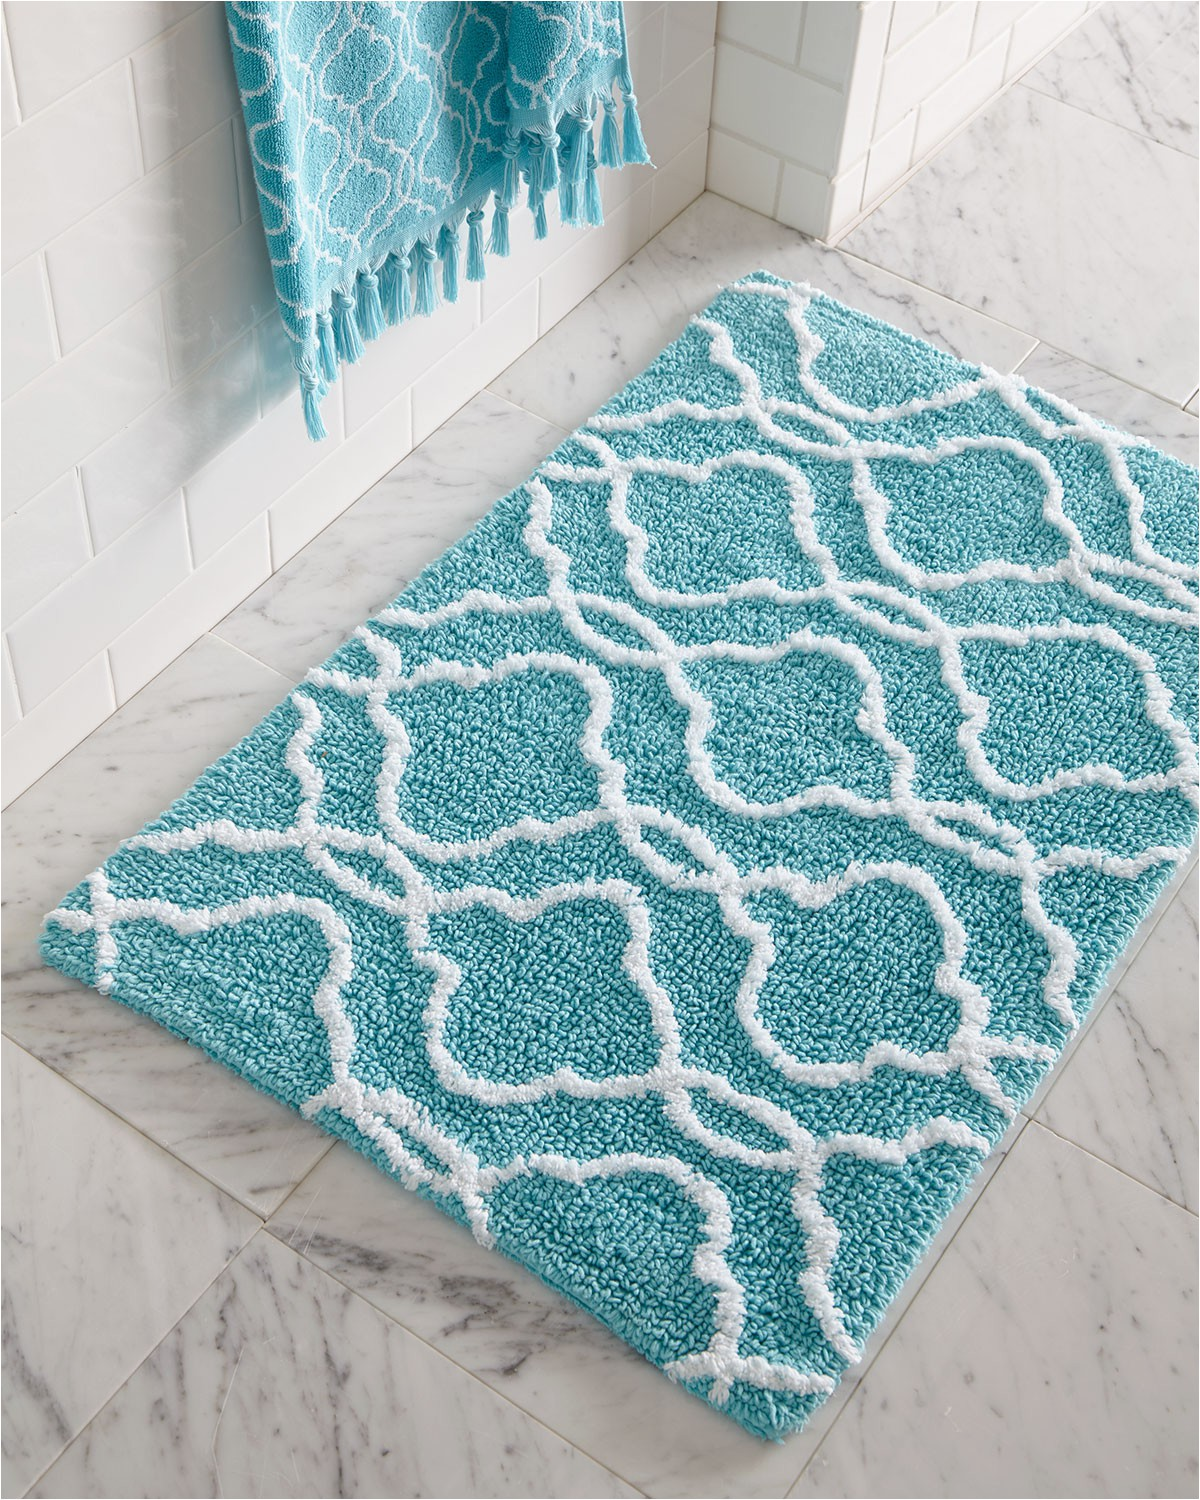 Target Bath Mats and Rugs Bathroom Mats Uk Image Of Bathroom and Closet